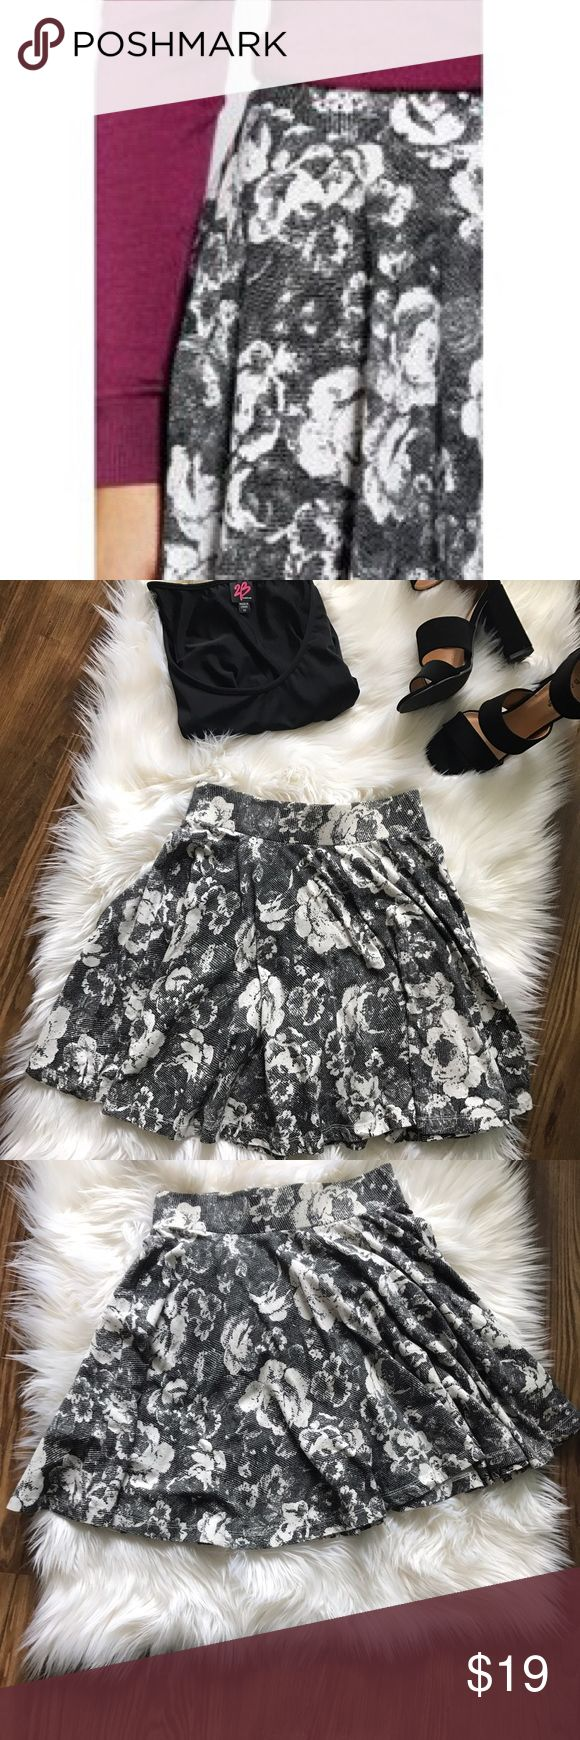 Pins & Needles Floral Skater Skirt In good condition. skater skirt by pins and needles. Cute paired with a shirt tucked in and some leggings or with a crop top. No holes or piling. Urban Outfitters Skirts Circle & Skater